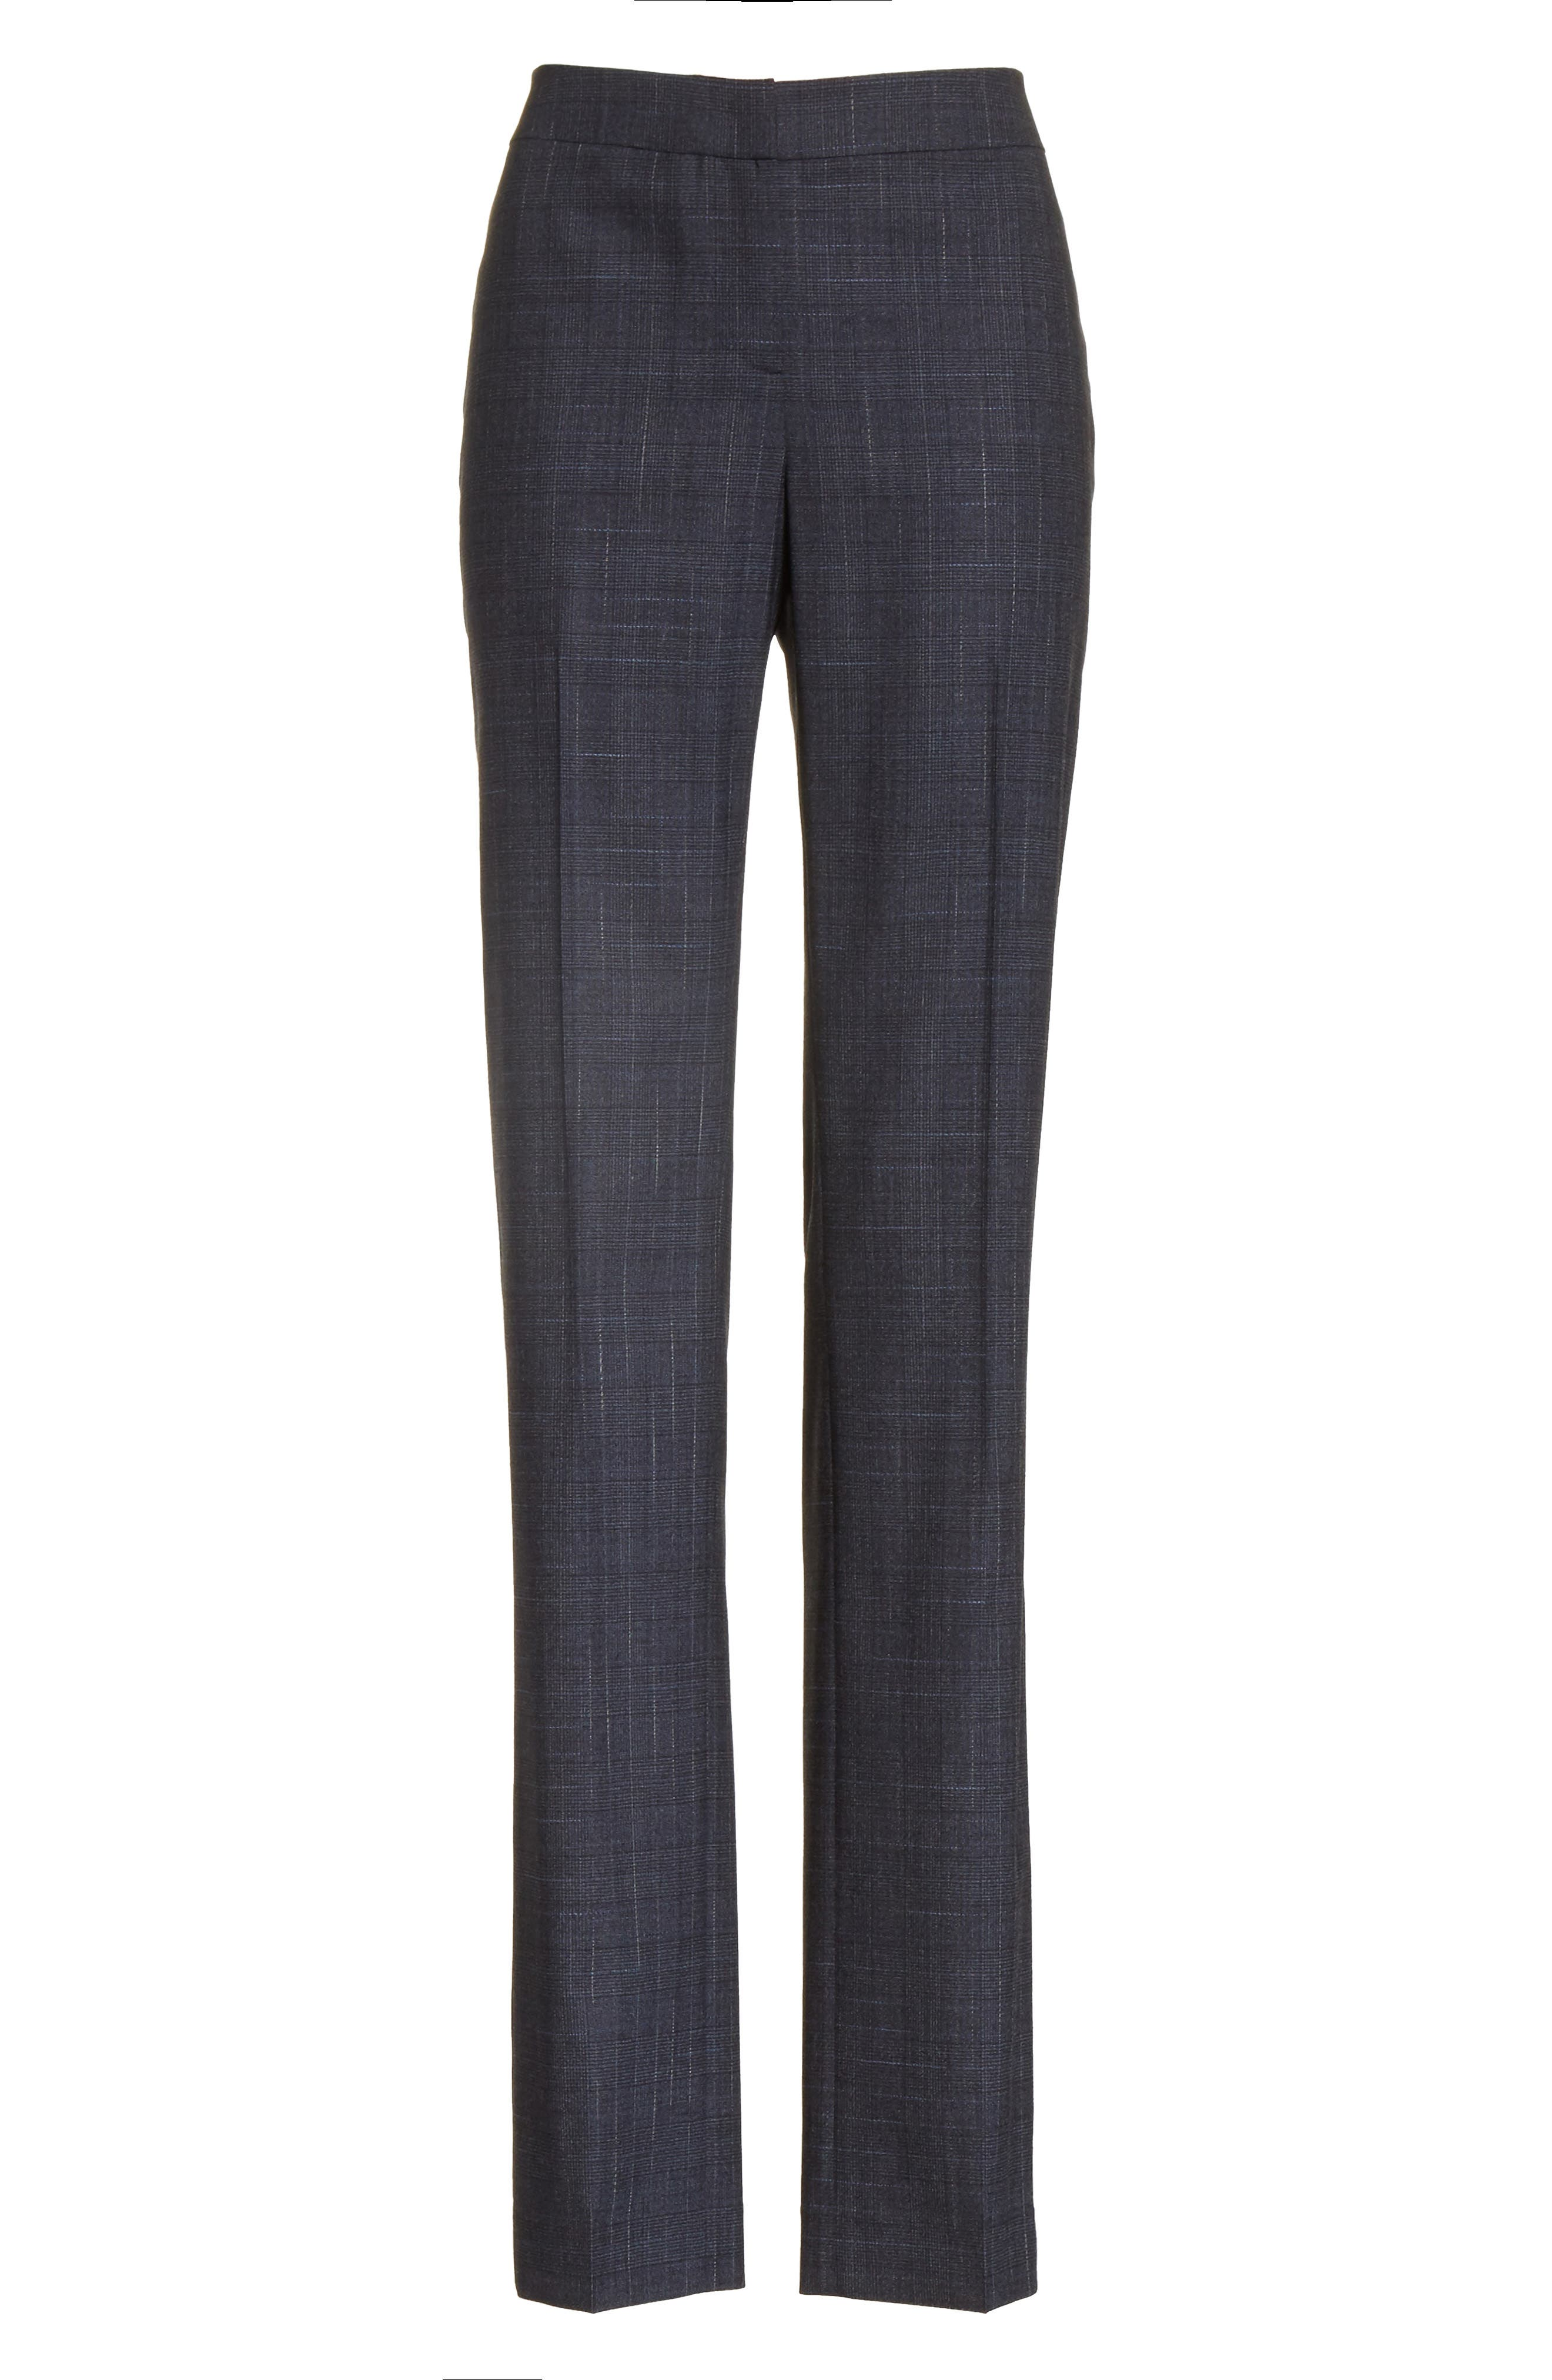 Barrow Stretch Wool Pants,                             Alternate thumbnail 10, color,                             Ink Multi